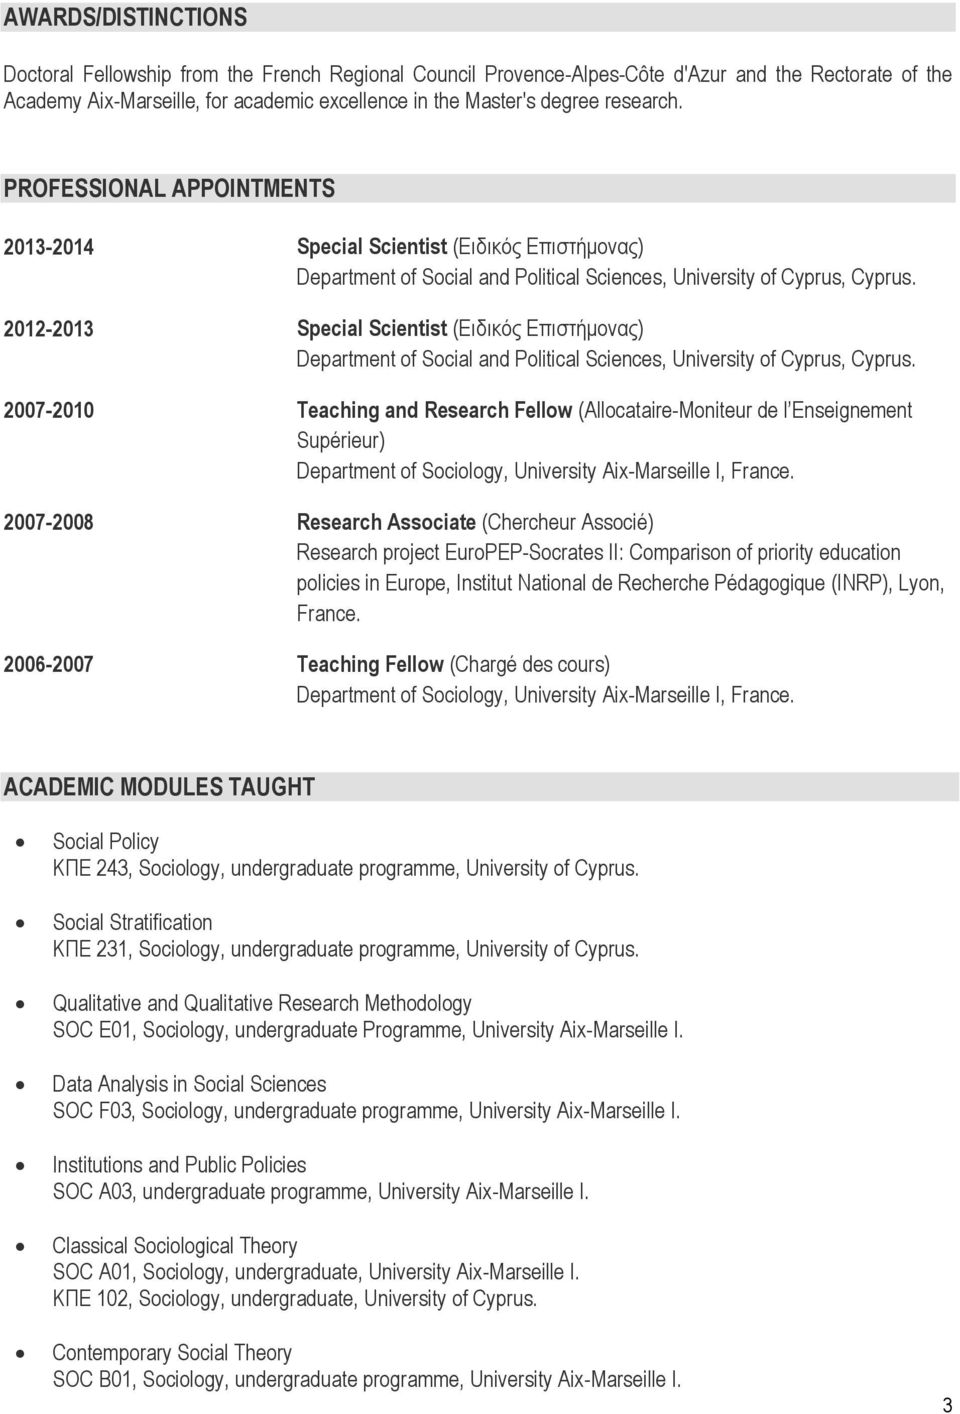 2012-2013 Special Scientist (Ειδικός Επιστήμονας) Department of Social and Political Sciences, University of Cyprus, Cyprus.